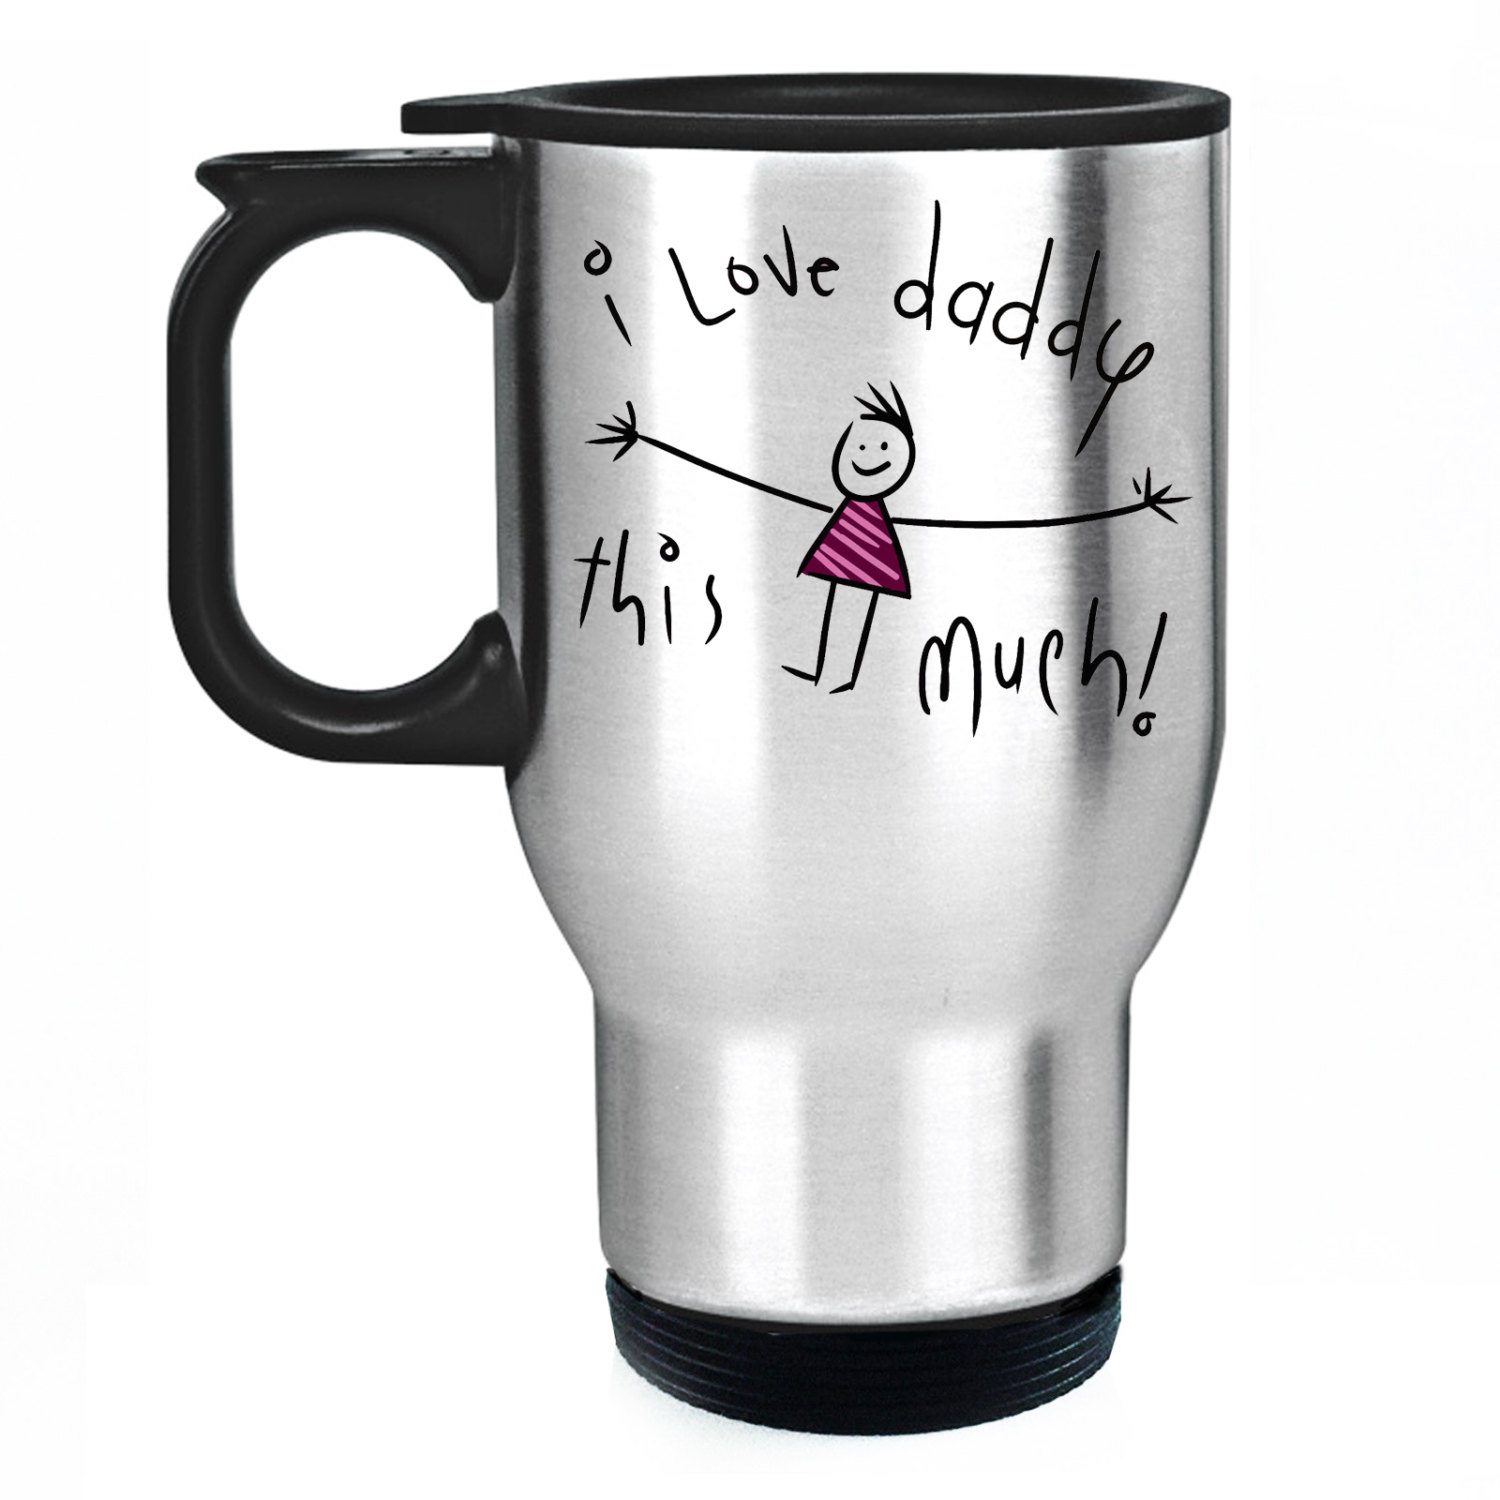 I Love Daddy This Mug Stainless Steel Travel Mug